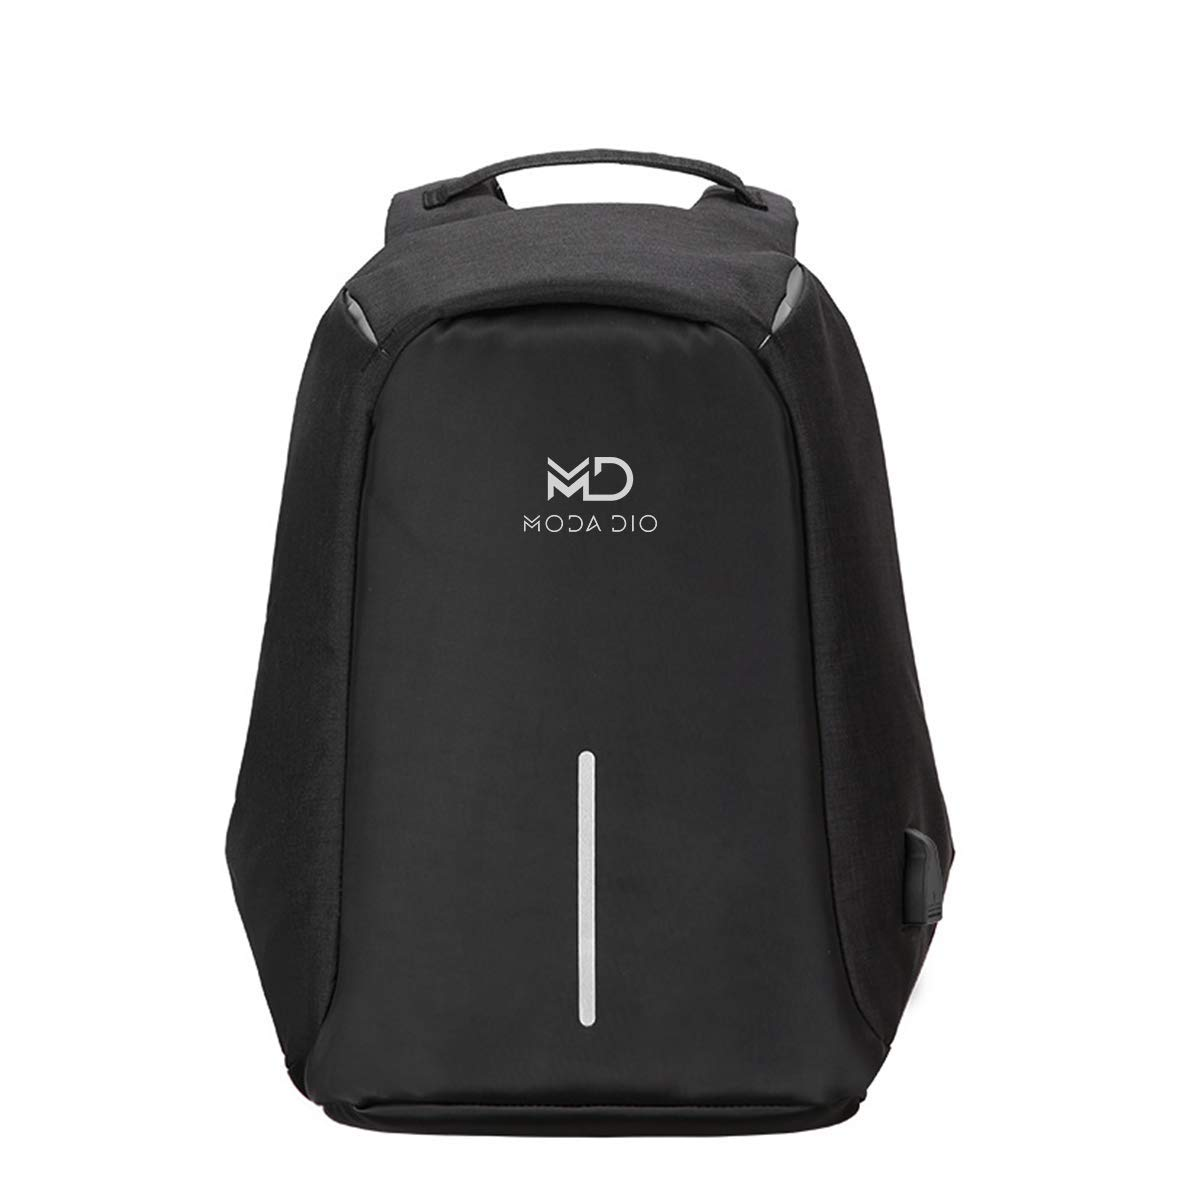 Vogue BPK12 Waterproof Anti Theft Laptop Backpack with Charging Port